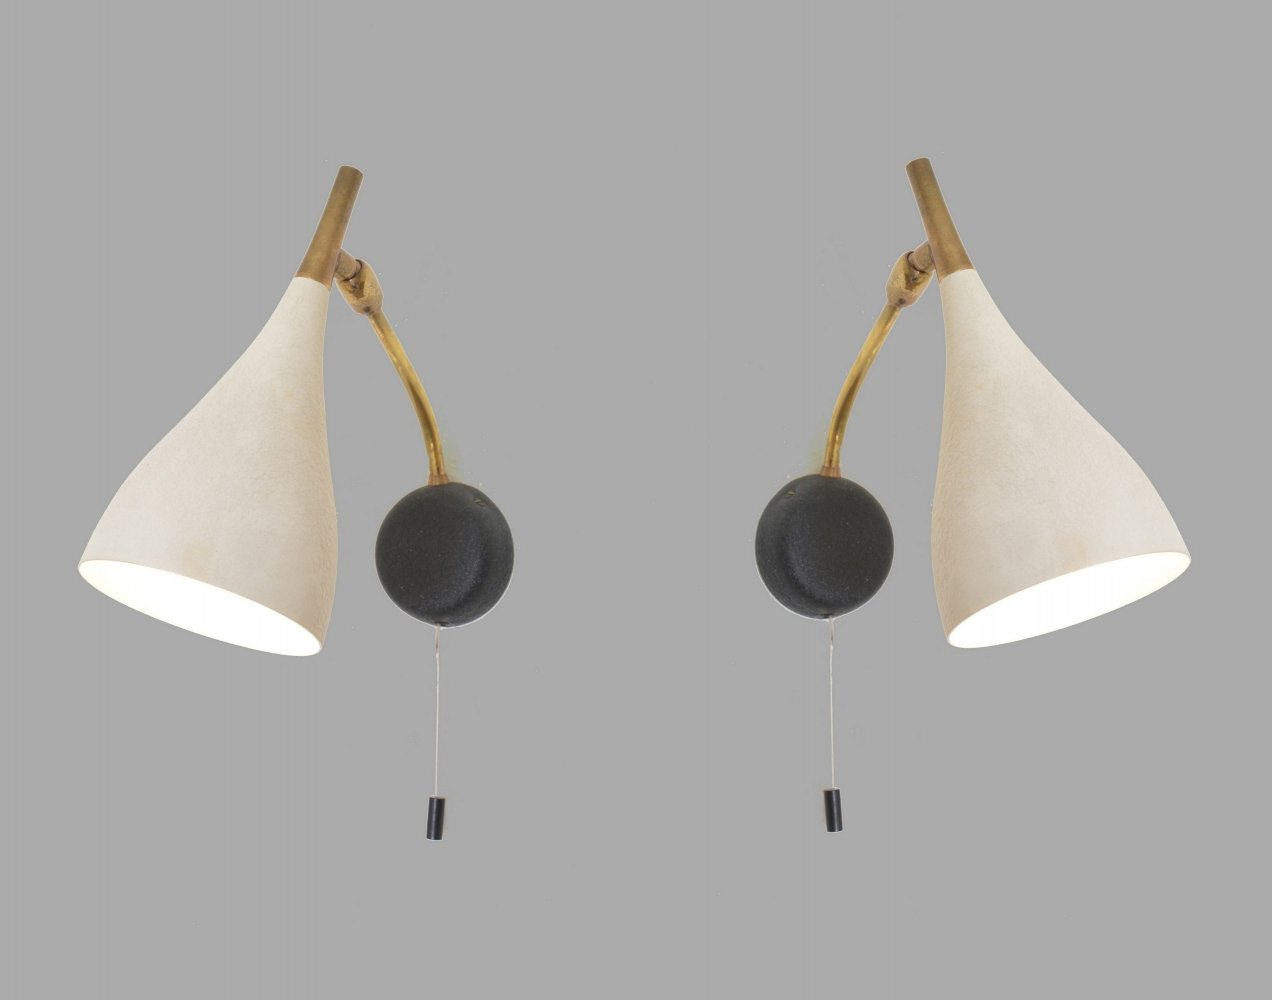 Pair of Cosack wall lamps, 1950s